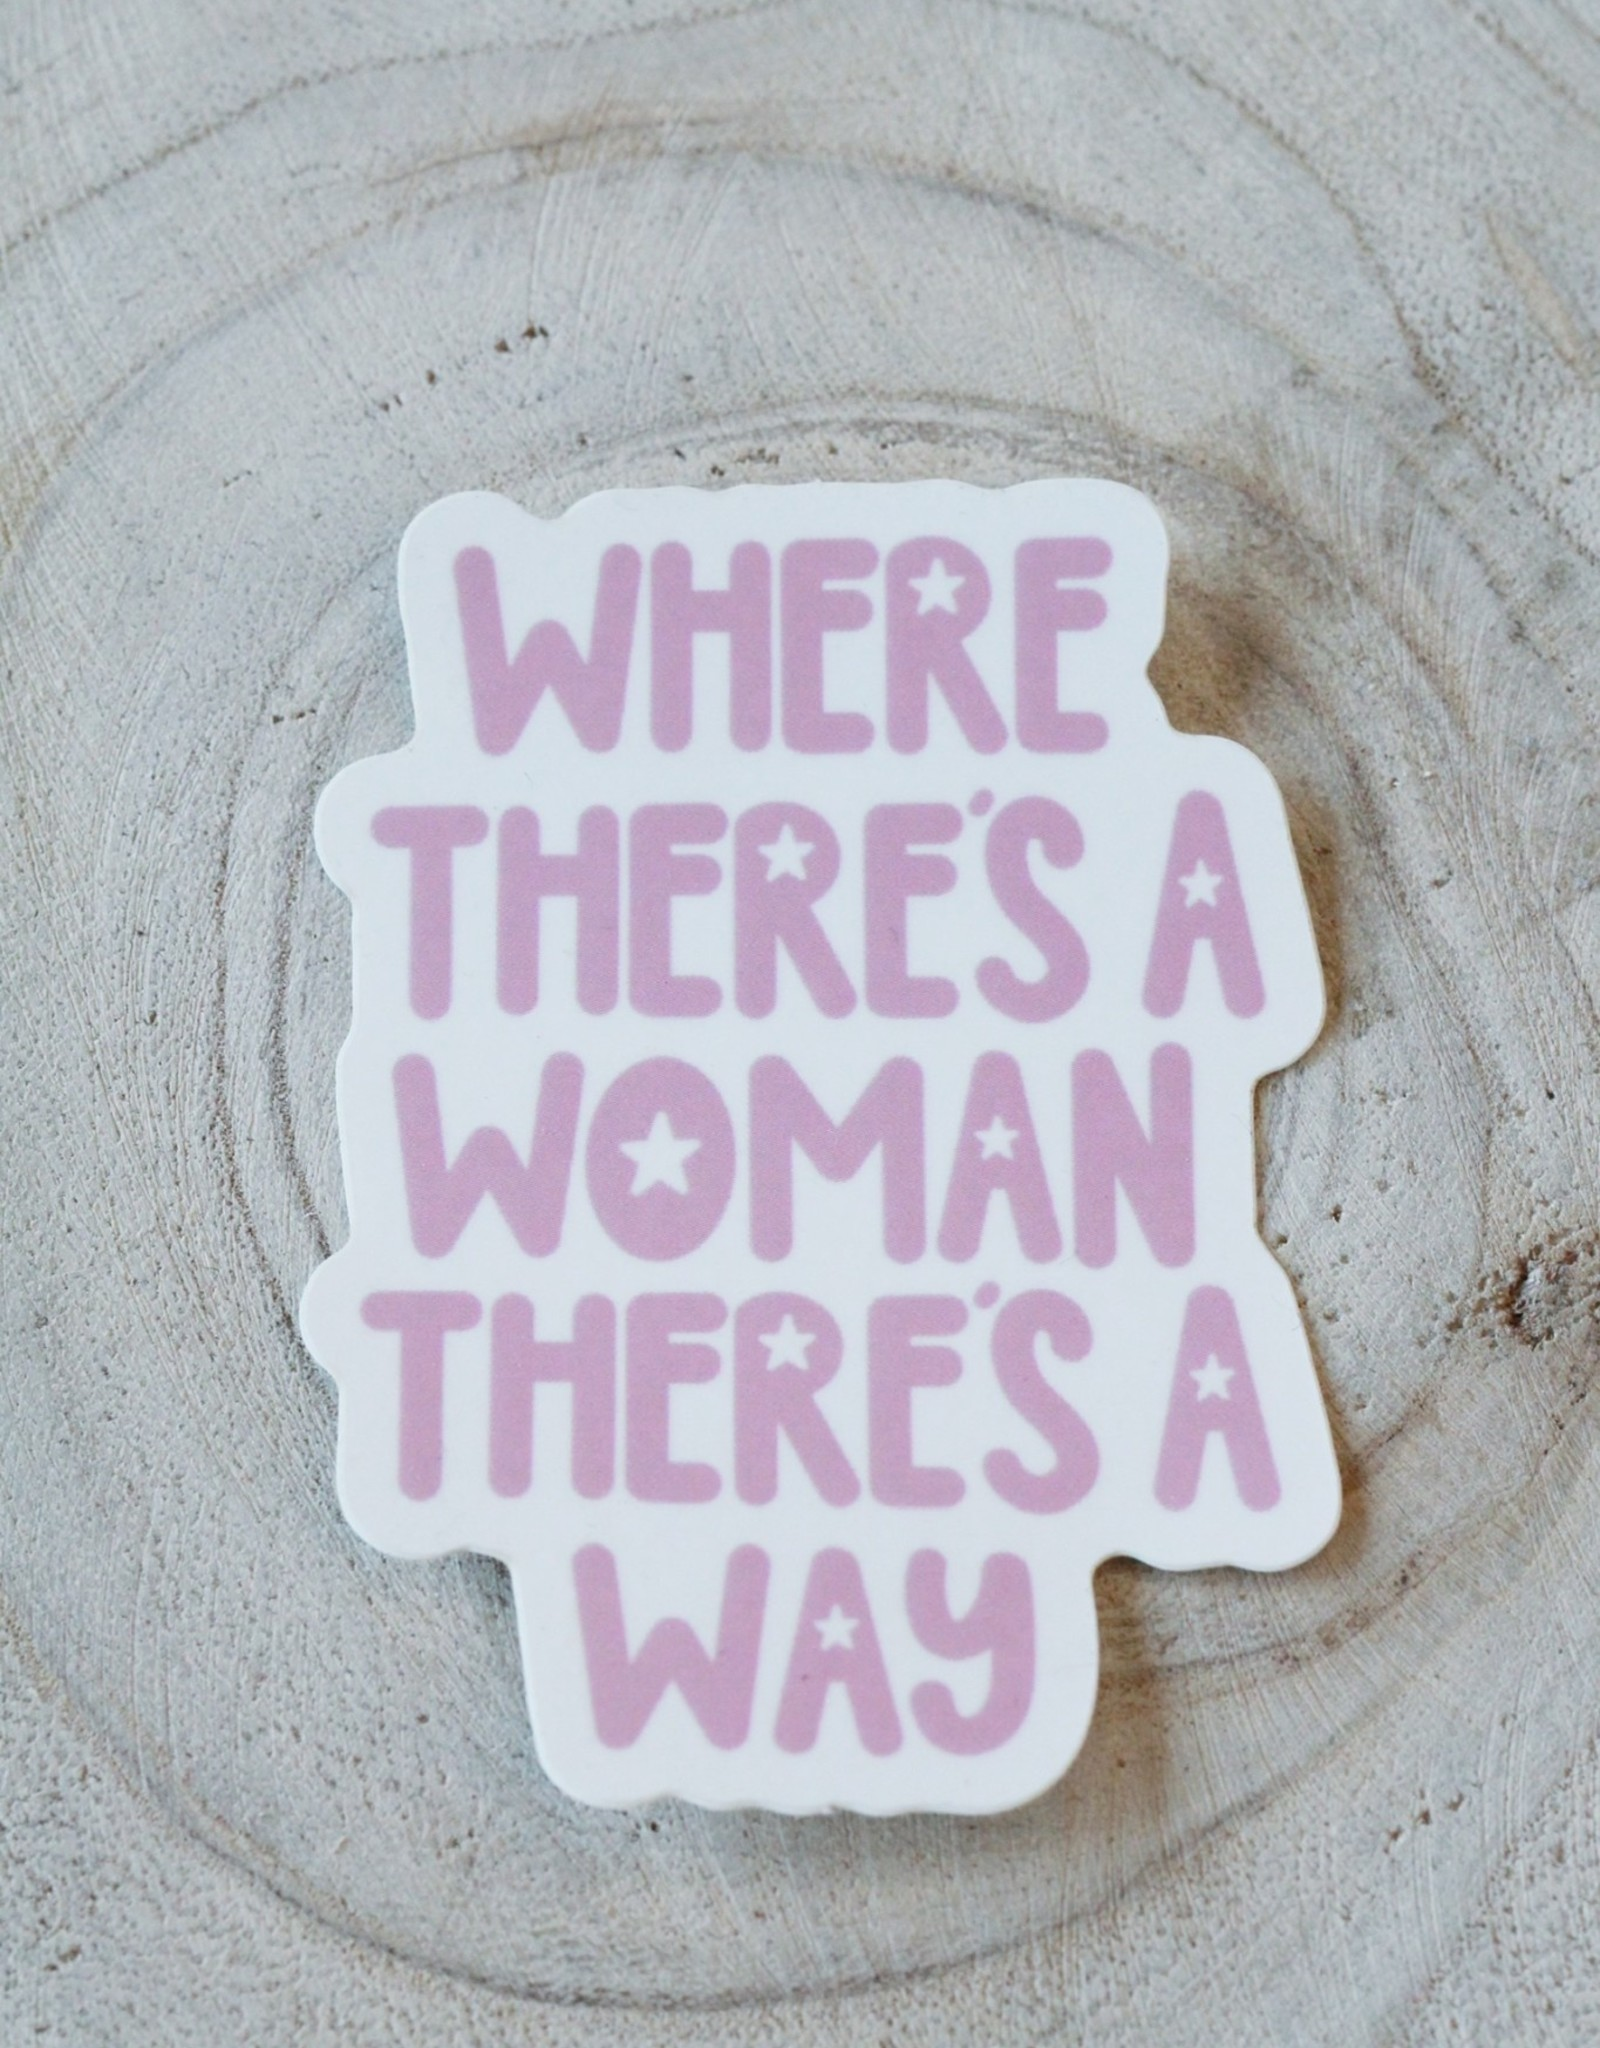 Cardinal Directions CD Stickers- Where There's a Woman